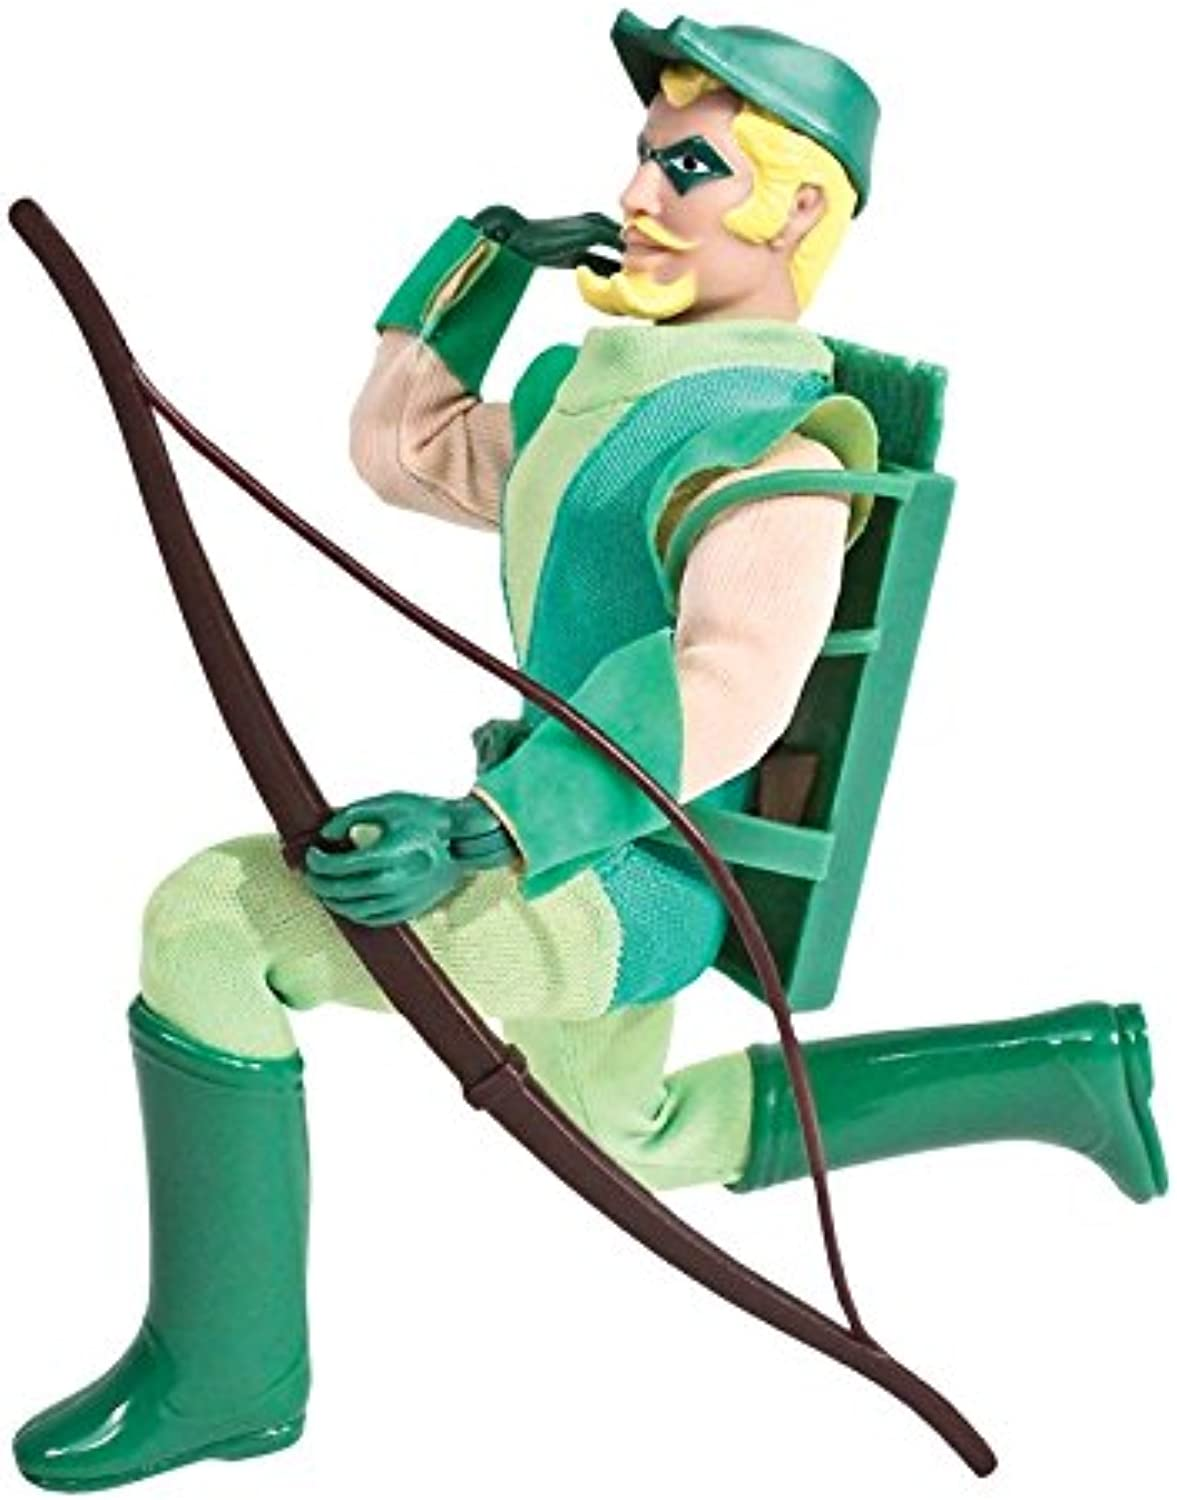 DC Comics Super Powers Series 1 Green Arrow 8 Inch Retro Action Figure